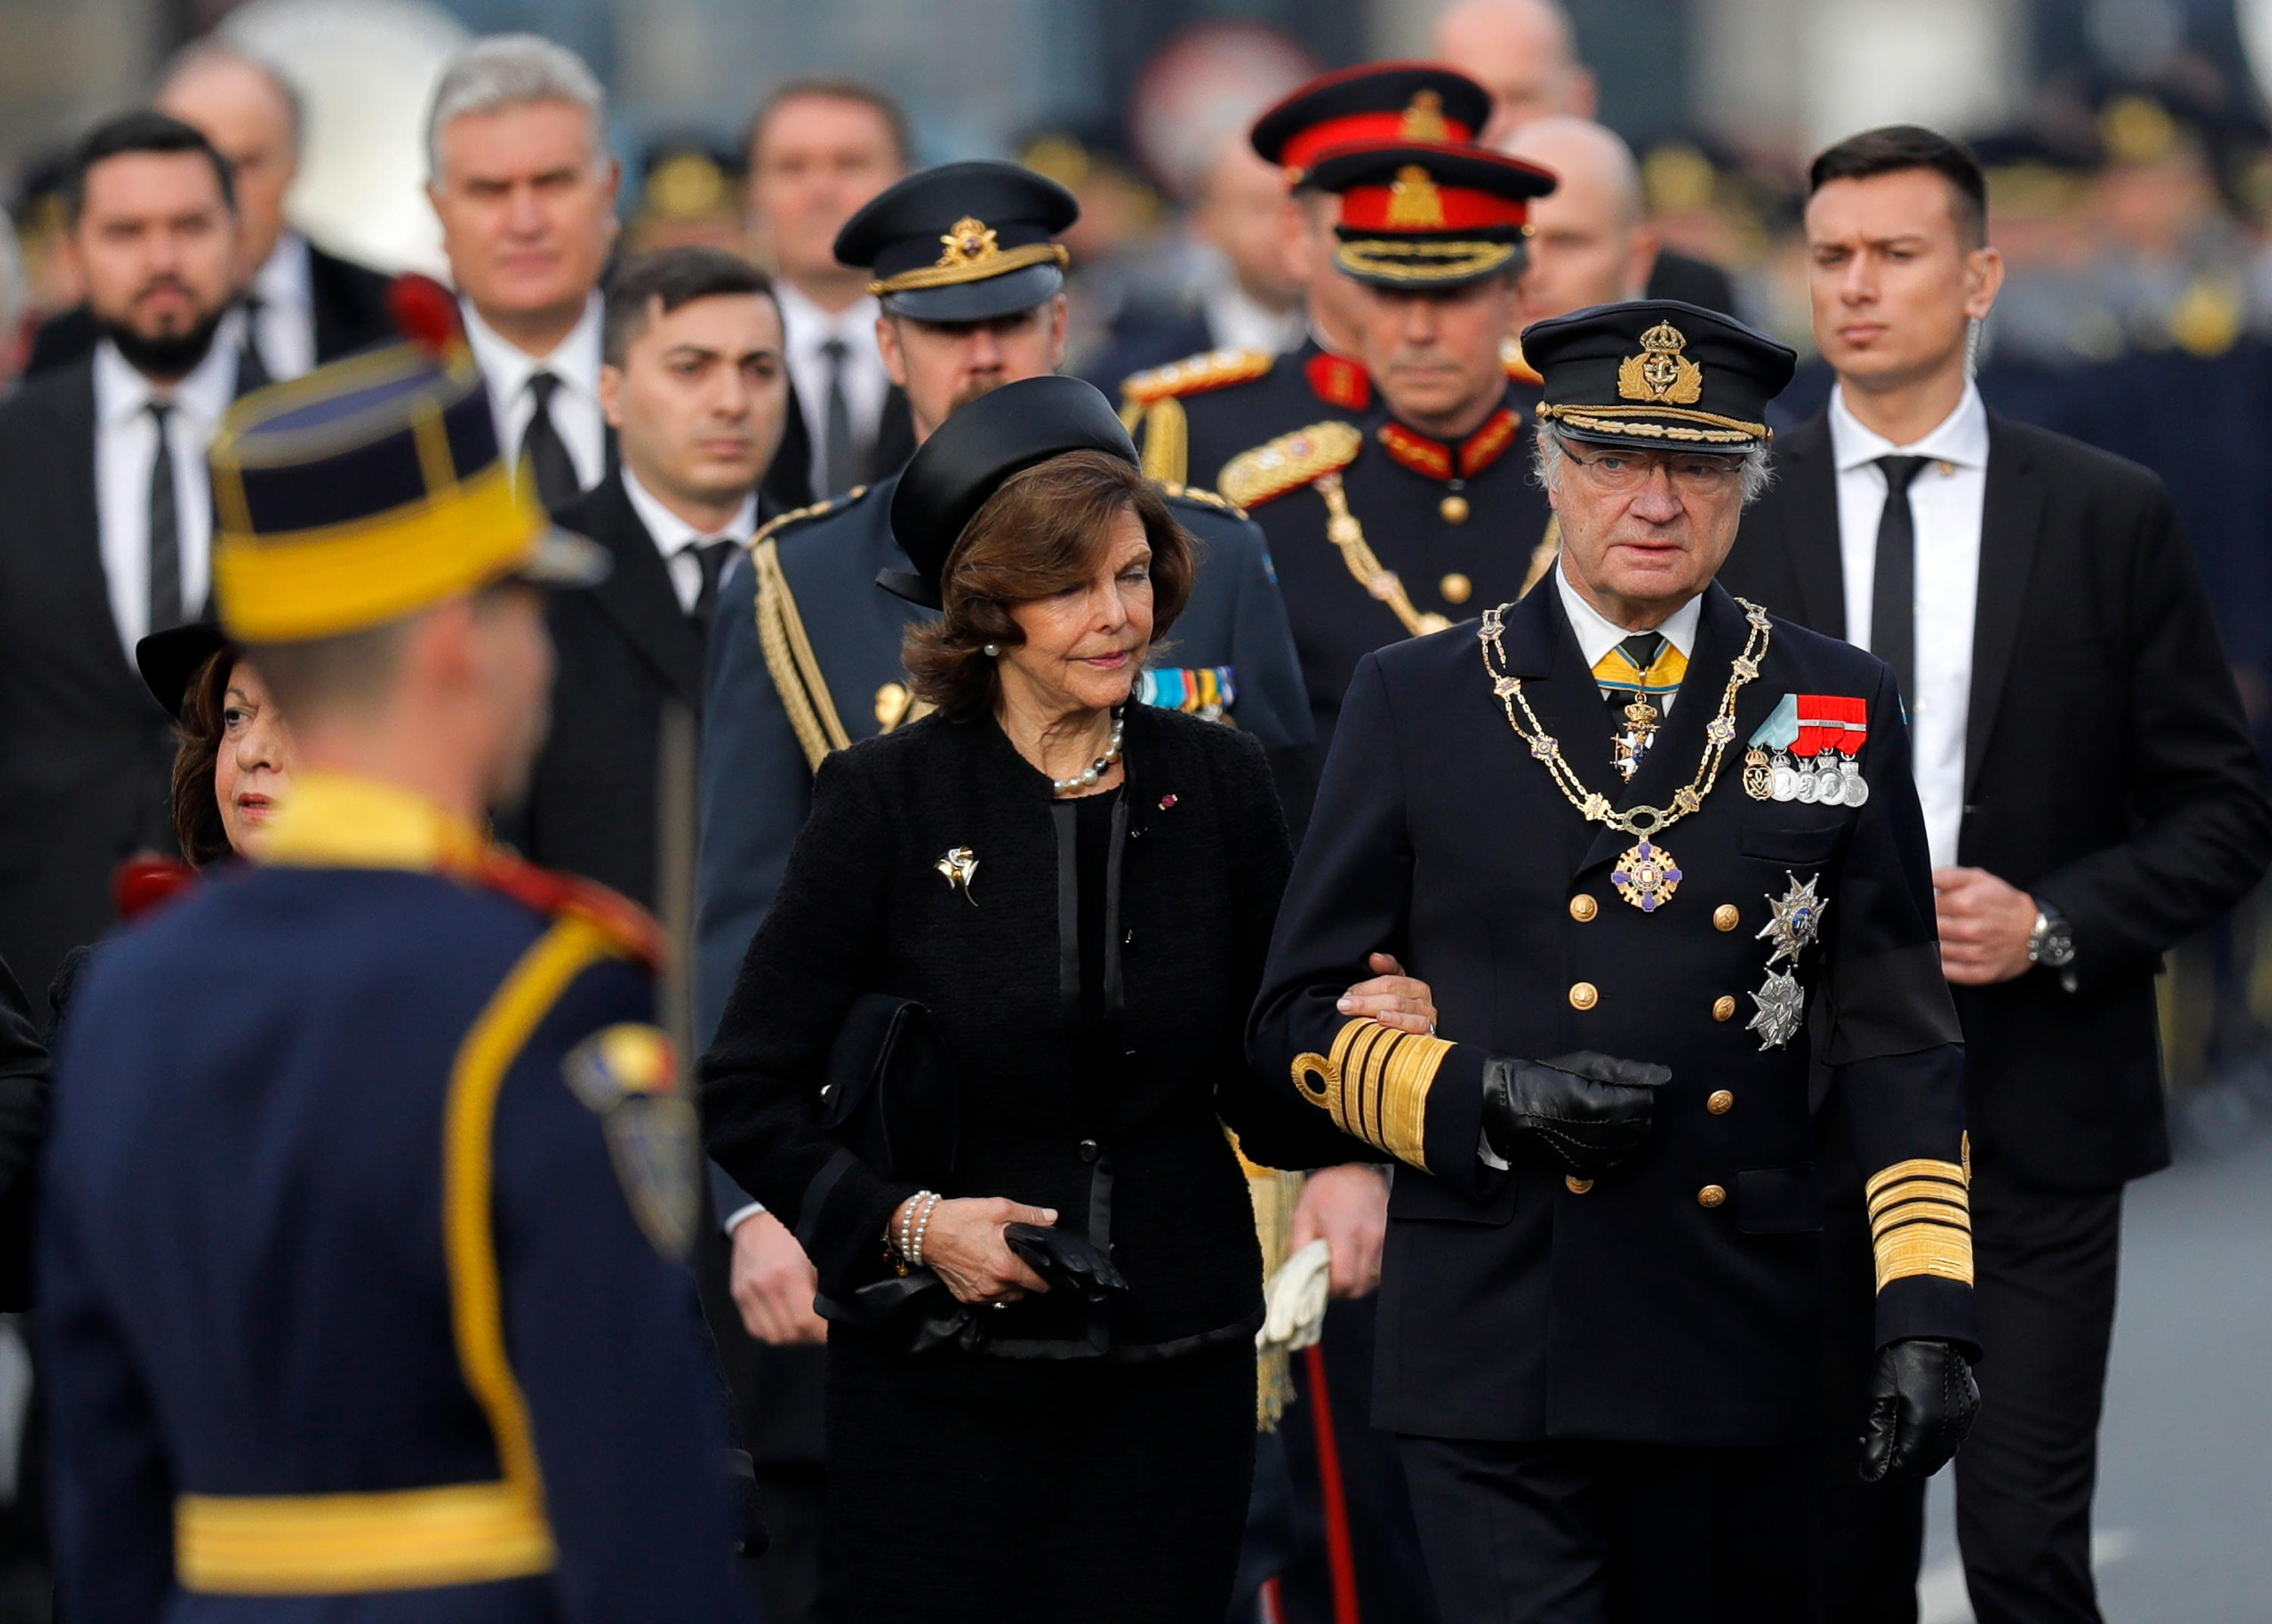 Sweden's King Carl XVI Gustaf, front right, and Queen Silvia, center, arrive for the funeral ceremony in tribute to late Romanian King Michael in Bucharest, Romania, Saturday, Dec.16, 2017. Thousands waited in line to pay their respects to Former King Michael, who ruled Romania during WWII, and died on Dec. 5, 2017, aged 96, in Switzerland. (AP Photo/Vadim Ghirda)